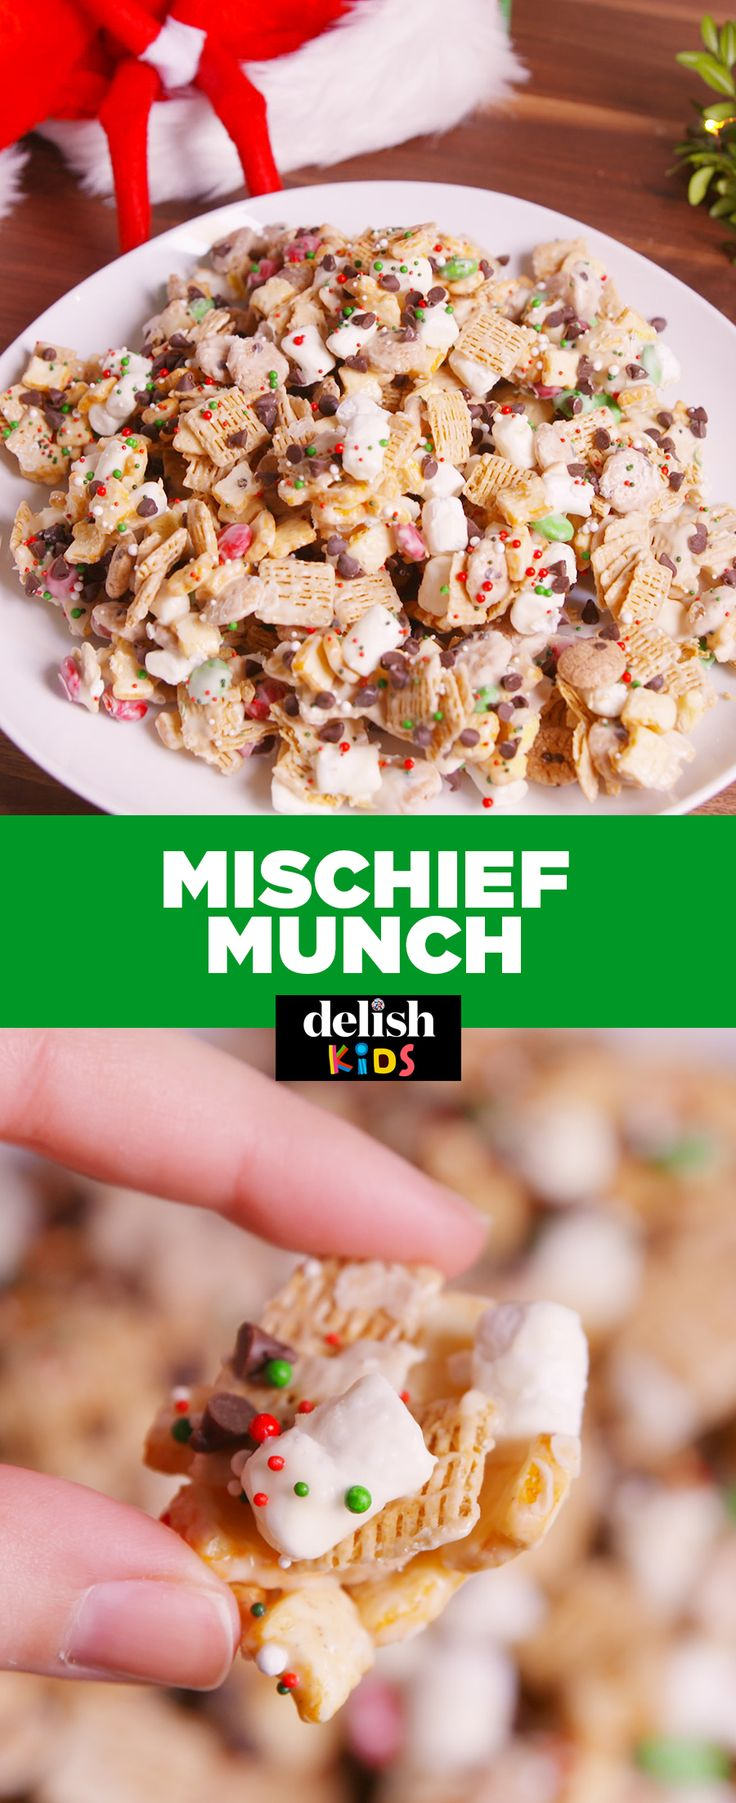 Watch out — this Mischief Munch will disappear before it even makes it to the table. Get the recipe at Delish.com.